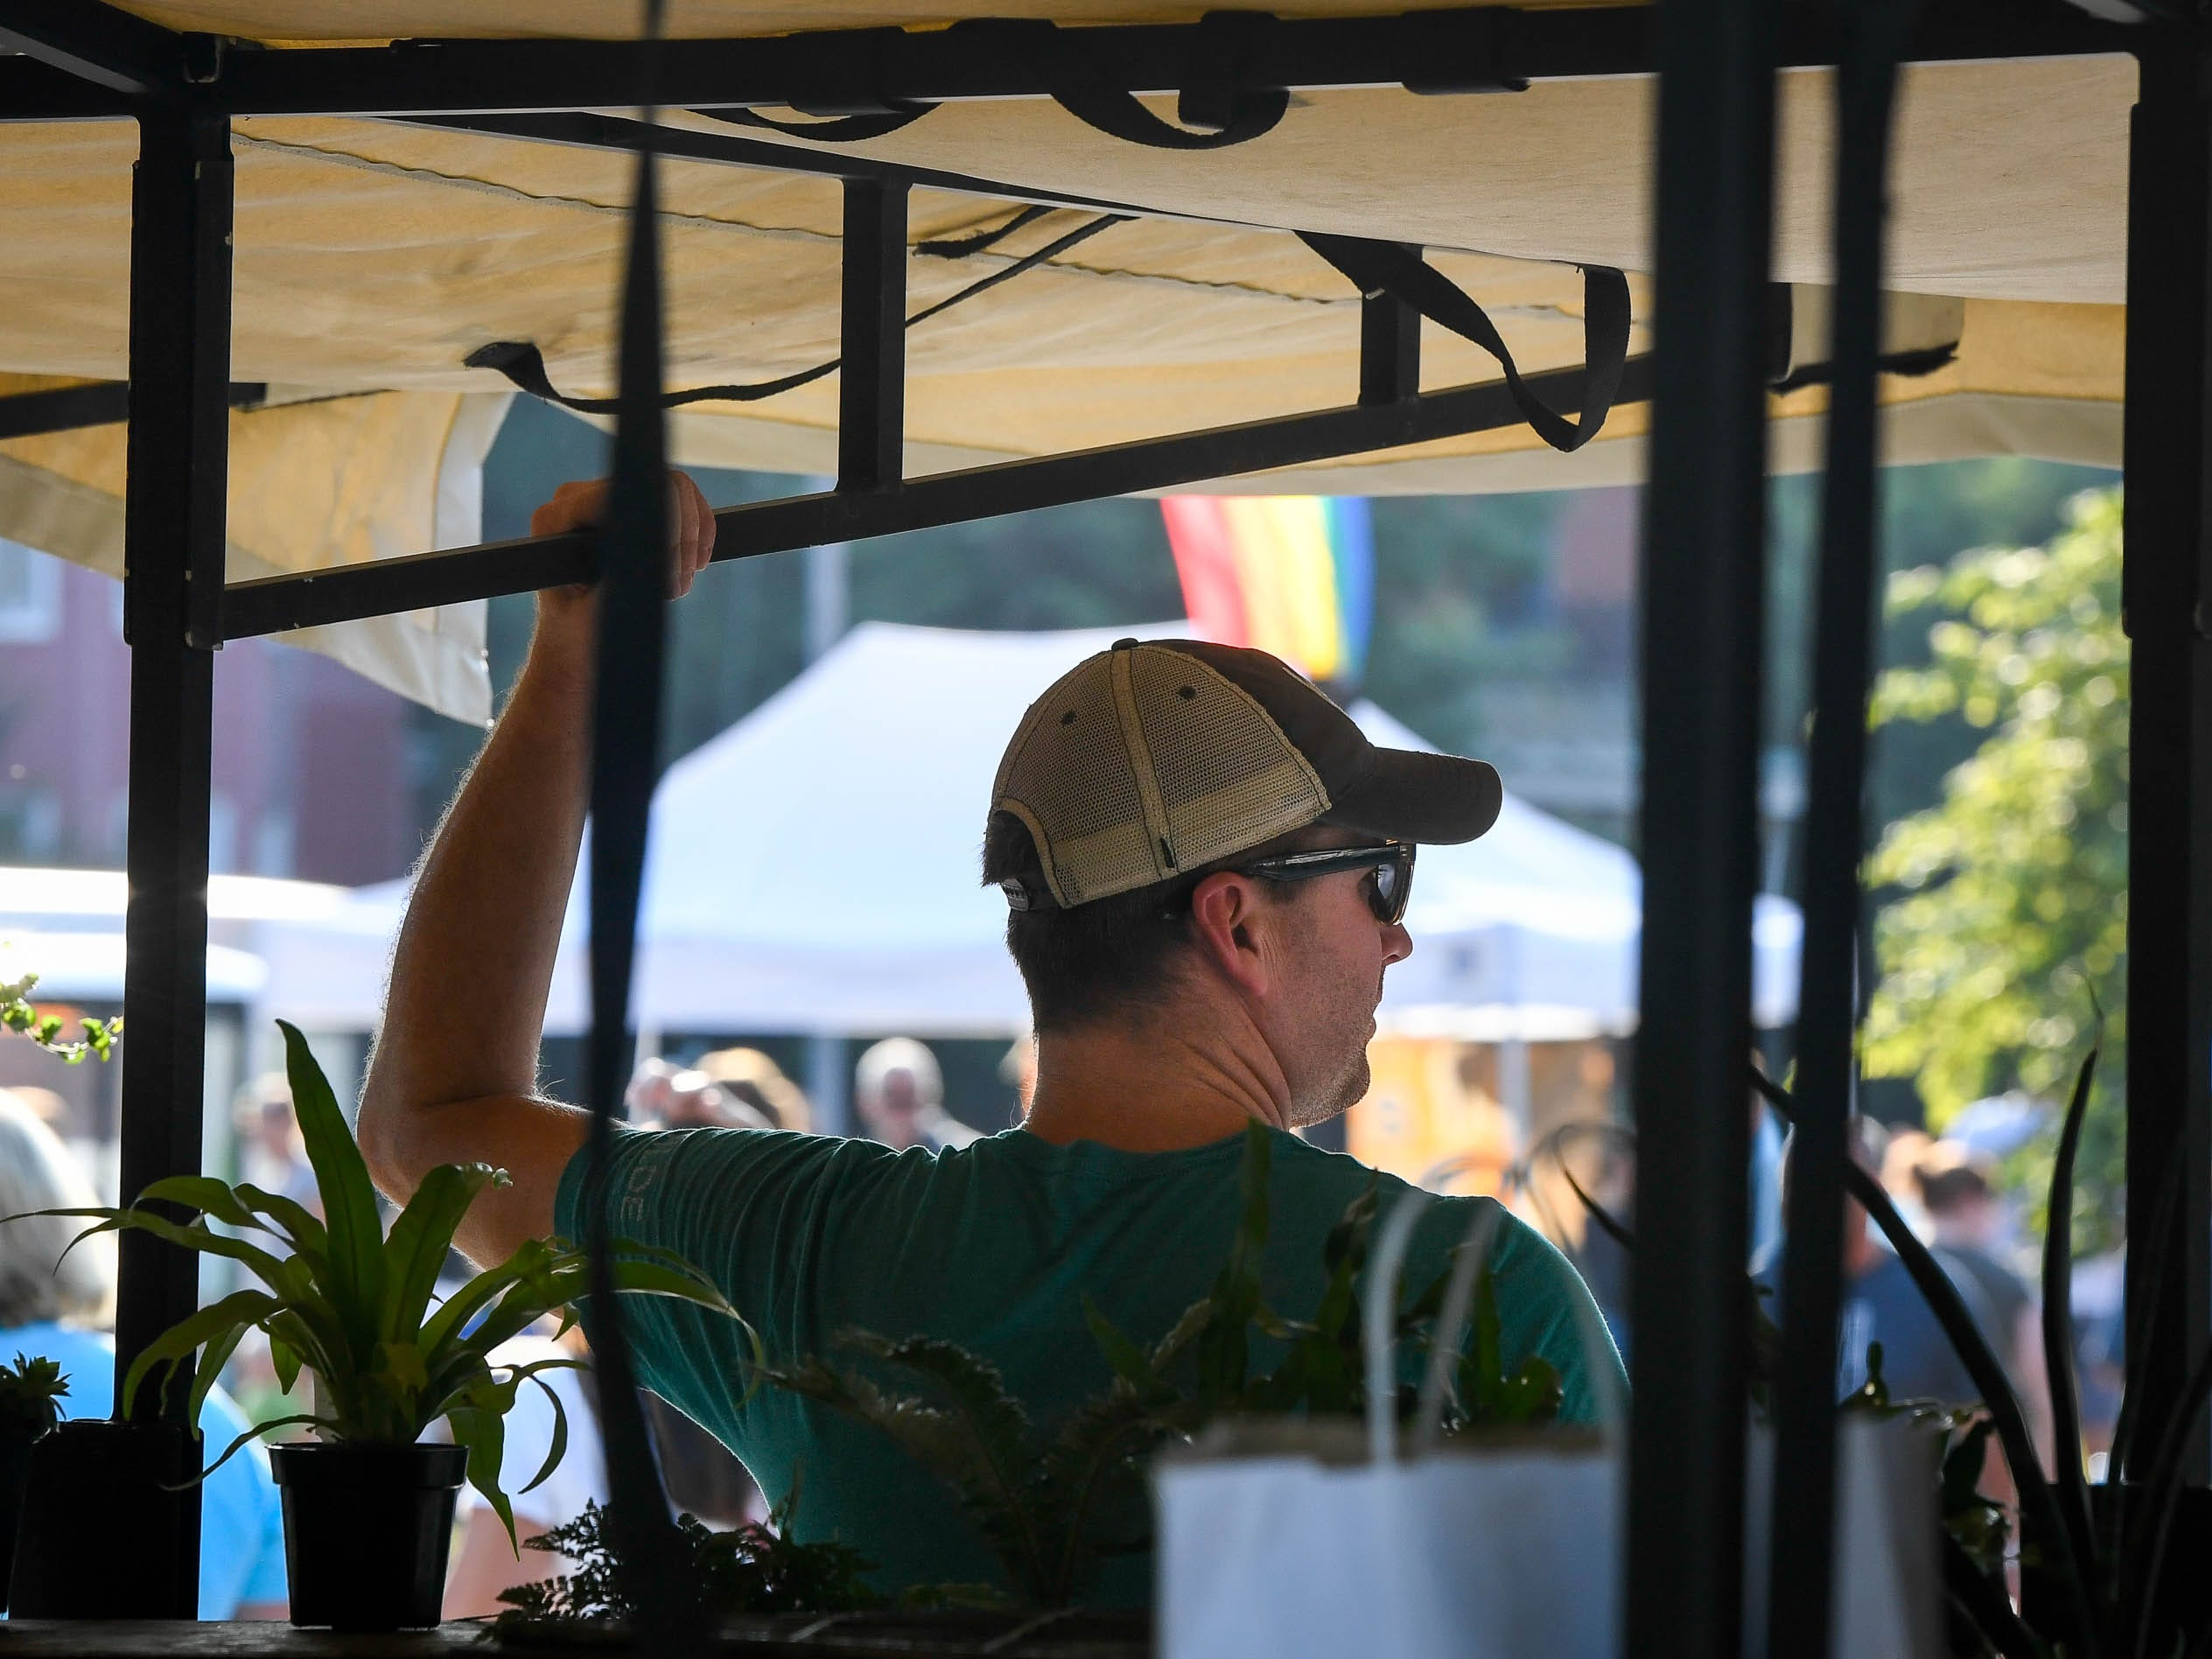 Looking out over the Arts District, Brian Wildeman tends to his truck selling horticultural items at the Haynie's Corner First Friday event in the downtown Evansville Friday, August 3, 2018.